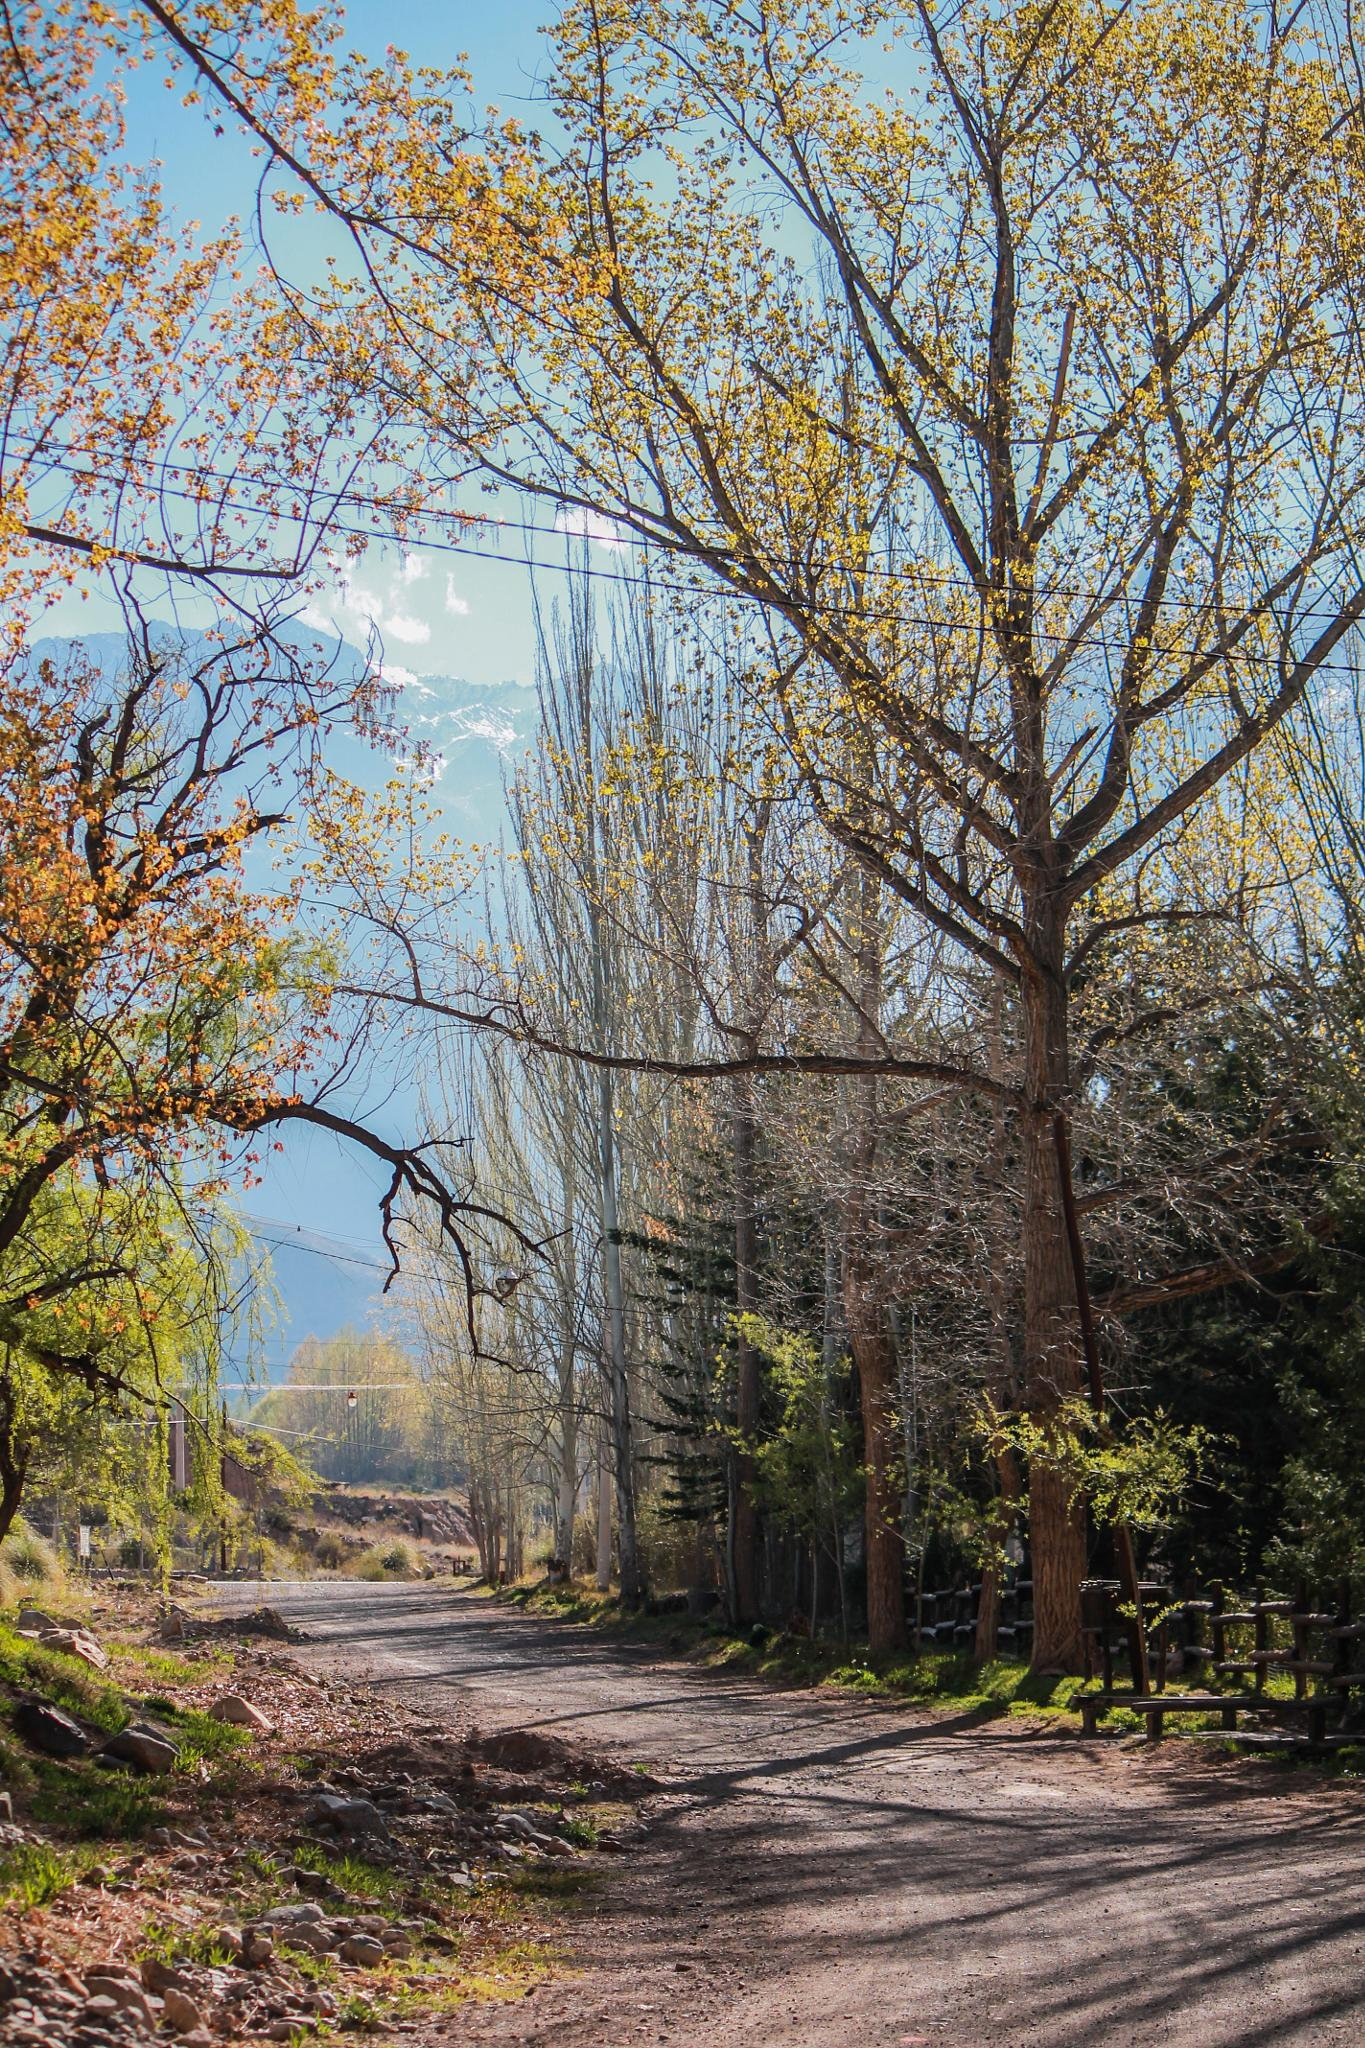 Autumn in Potrerillos * by JaveeDUva